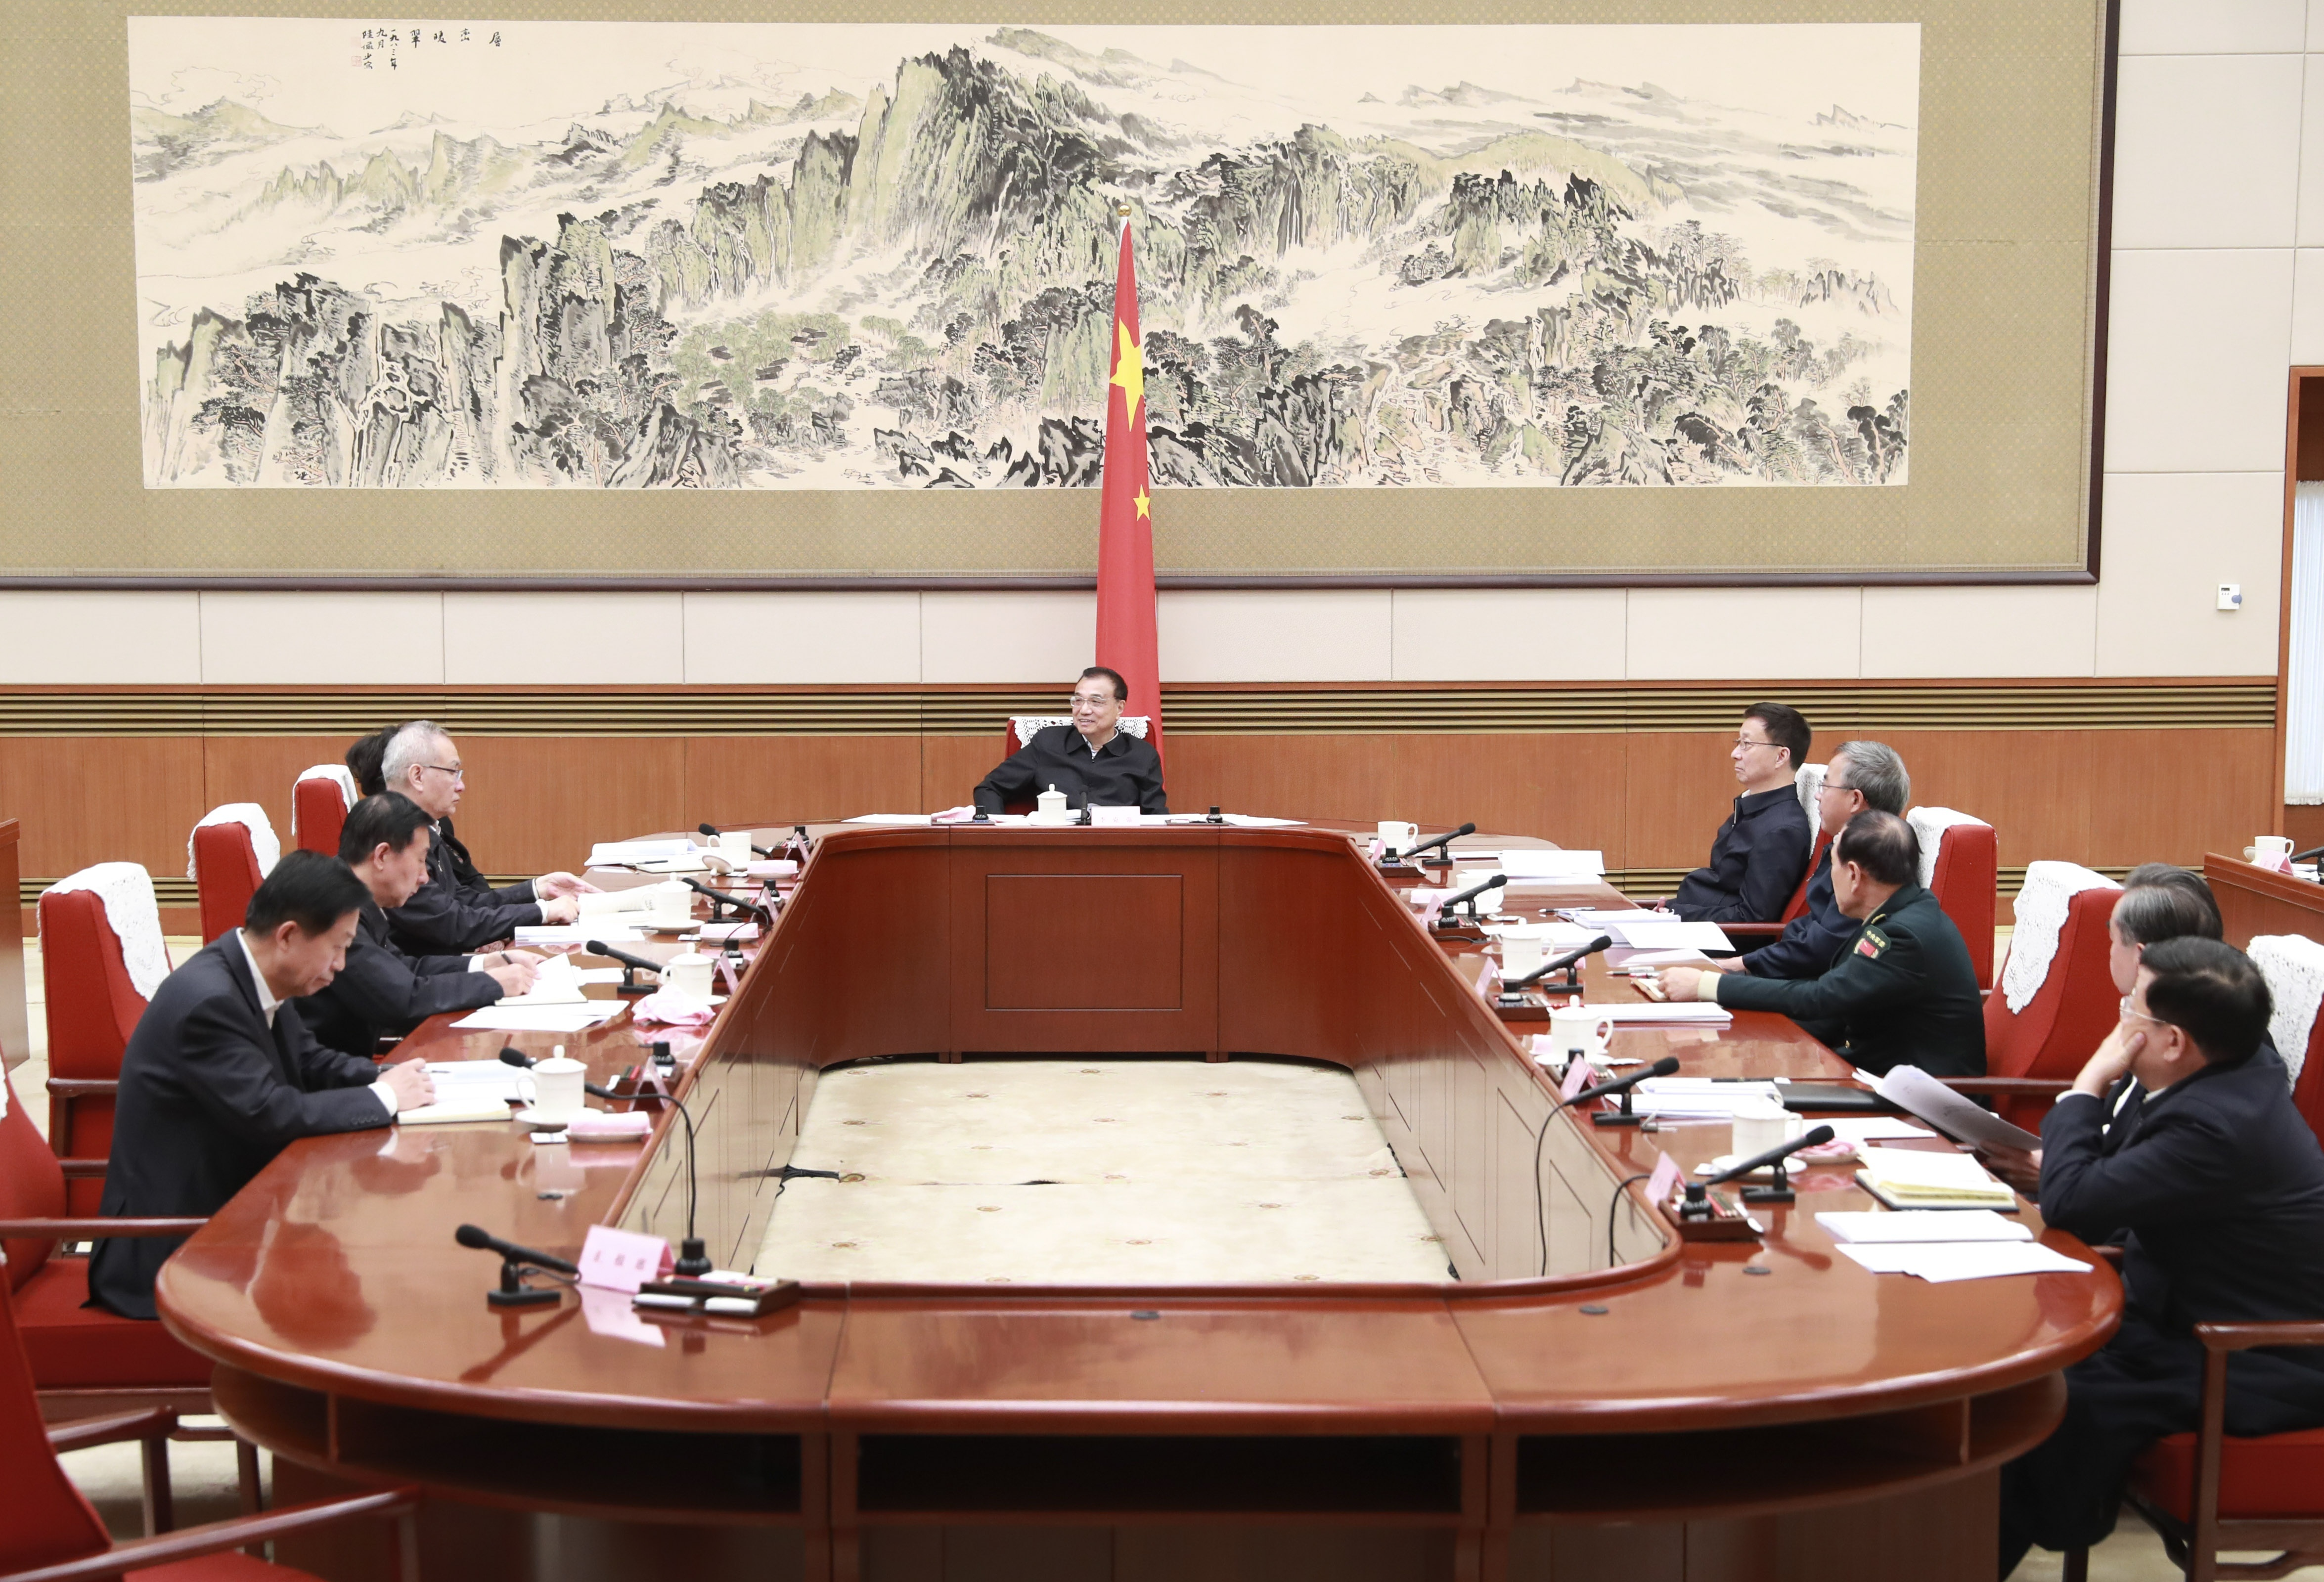 Chinese premier stresses high-standard formulation of new five-year plan